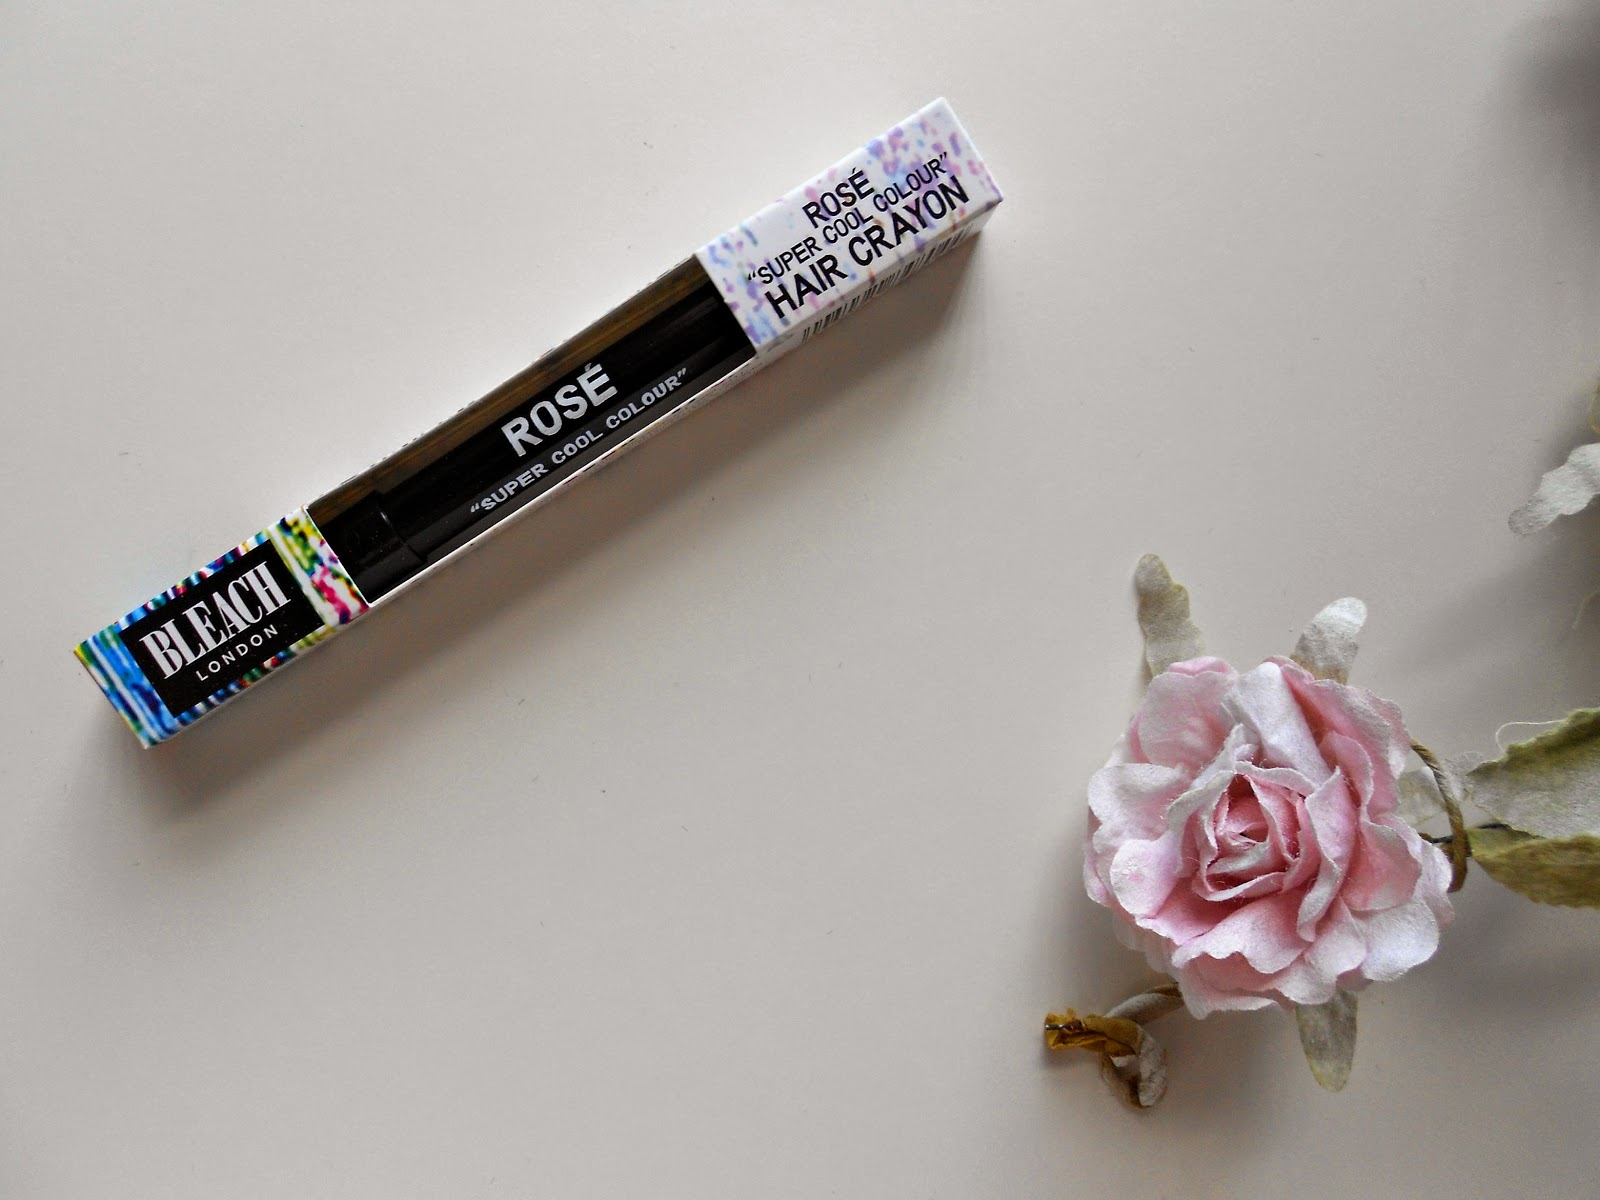 Bleach London Hair Crayon Review